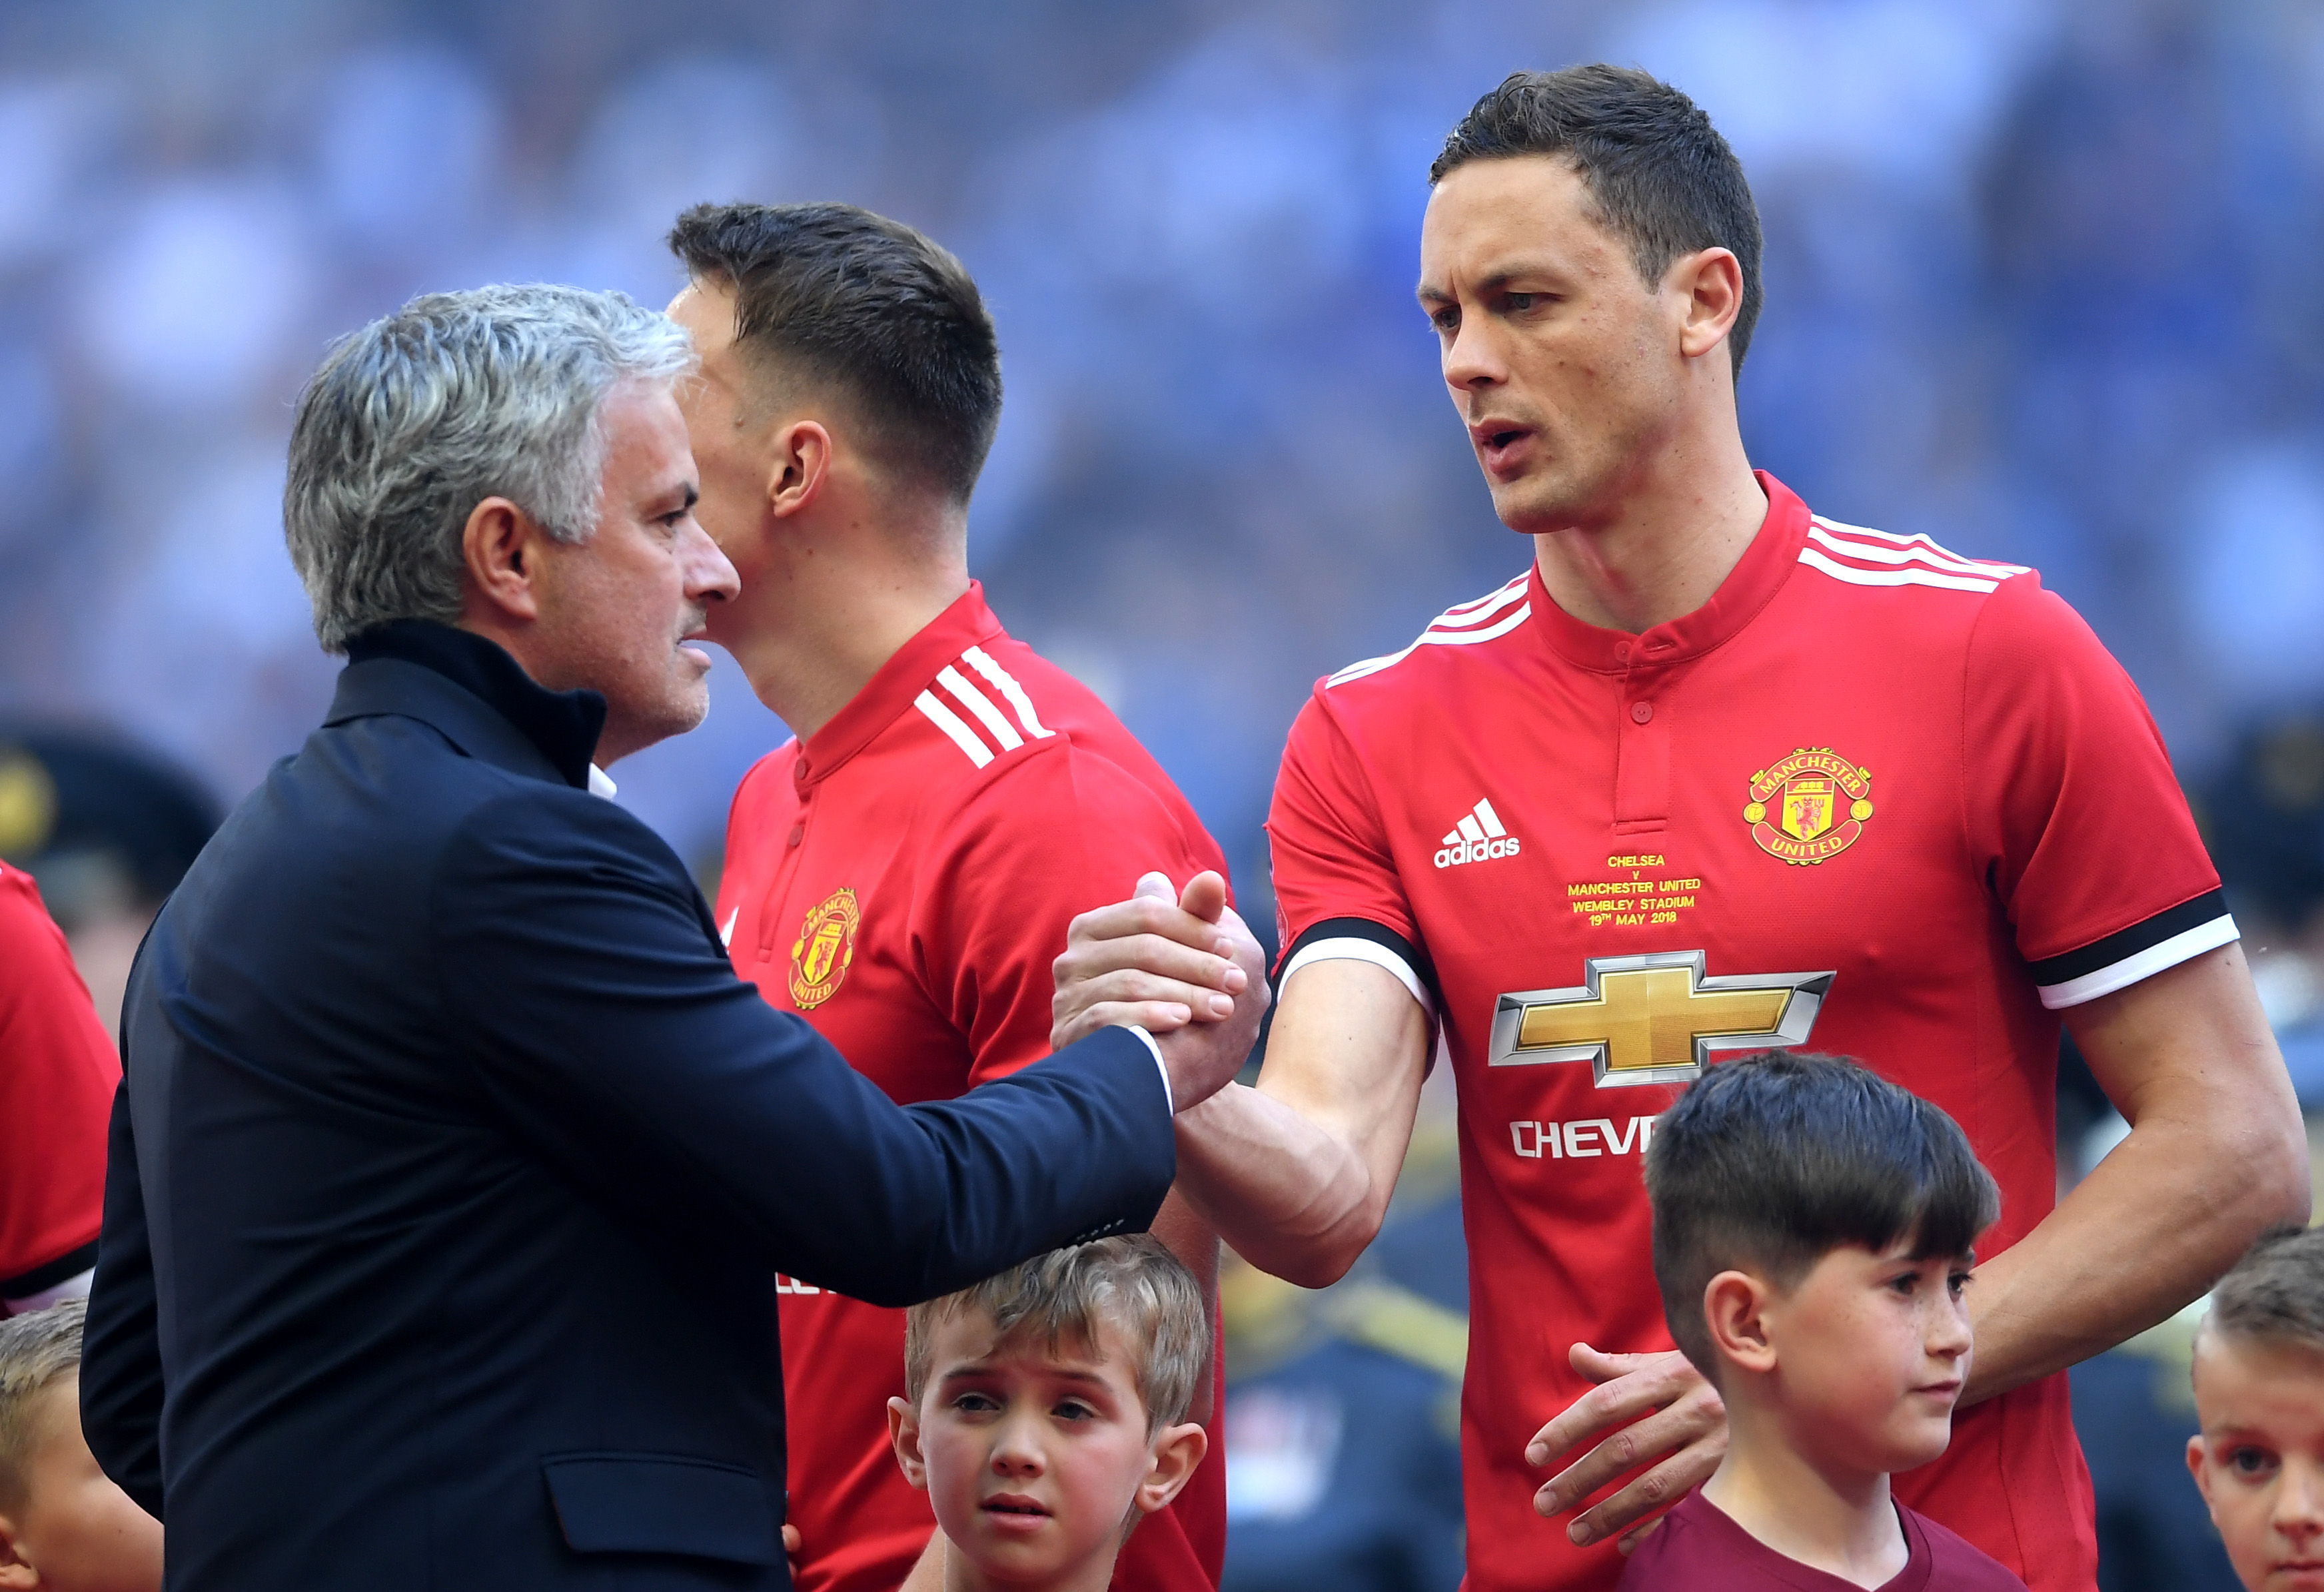 Matic to reunite with Jose Mourinho at Roma? (Photo by Laurence Griffiths/Getty Images)